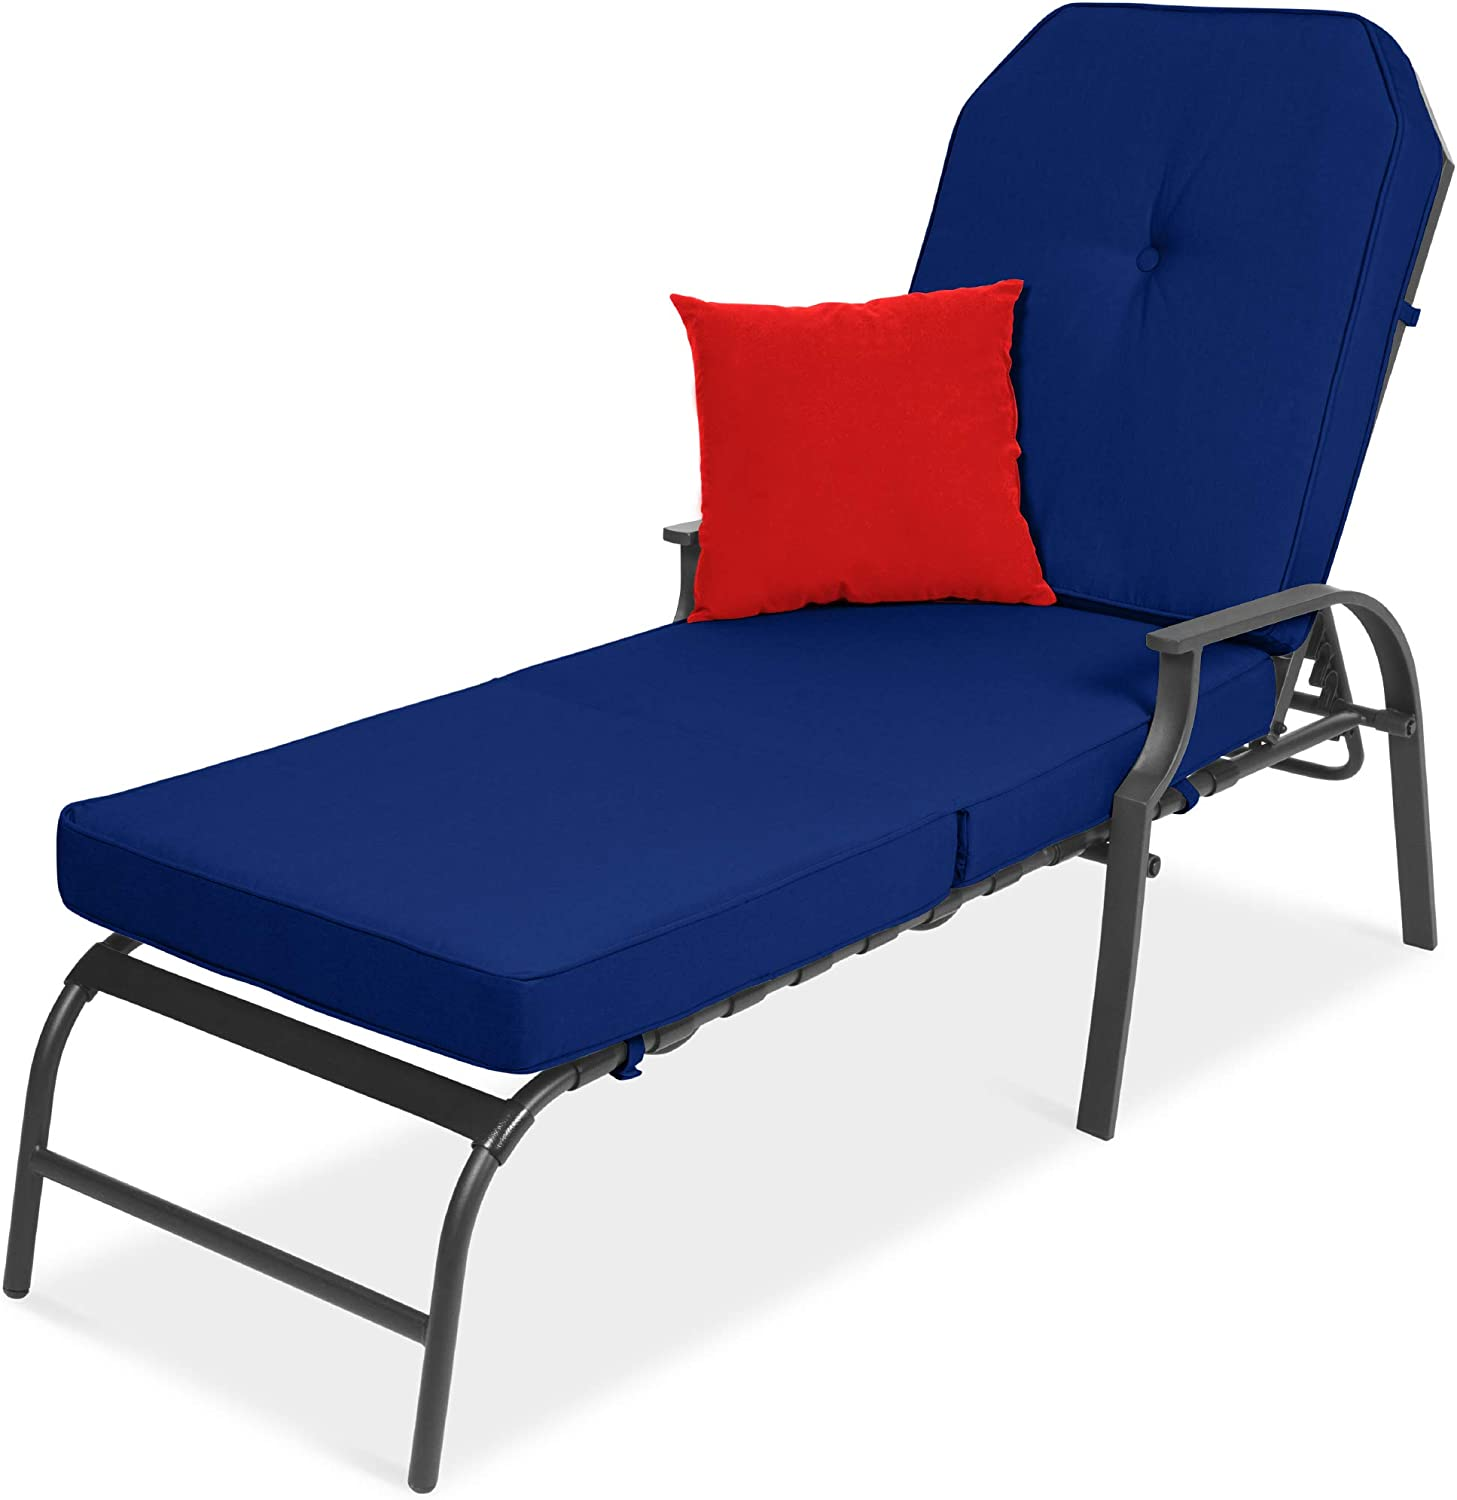 Best Choice Products Adjustable Outdoor Steel Patio Chaise Lounge Chair Furniture for Patio, Poolside w/ 5 Positions, UV-Resistant Cushions - Dark Gray/Navy